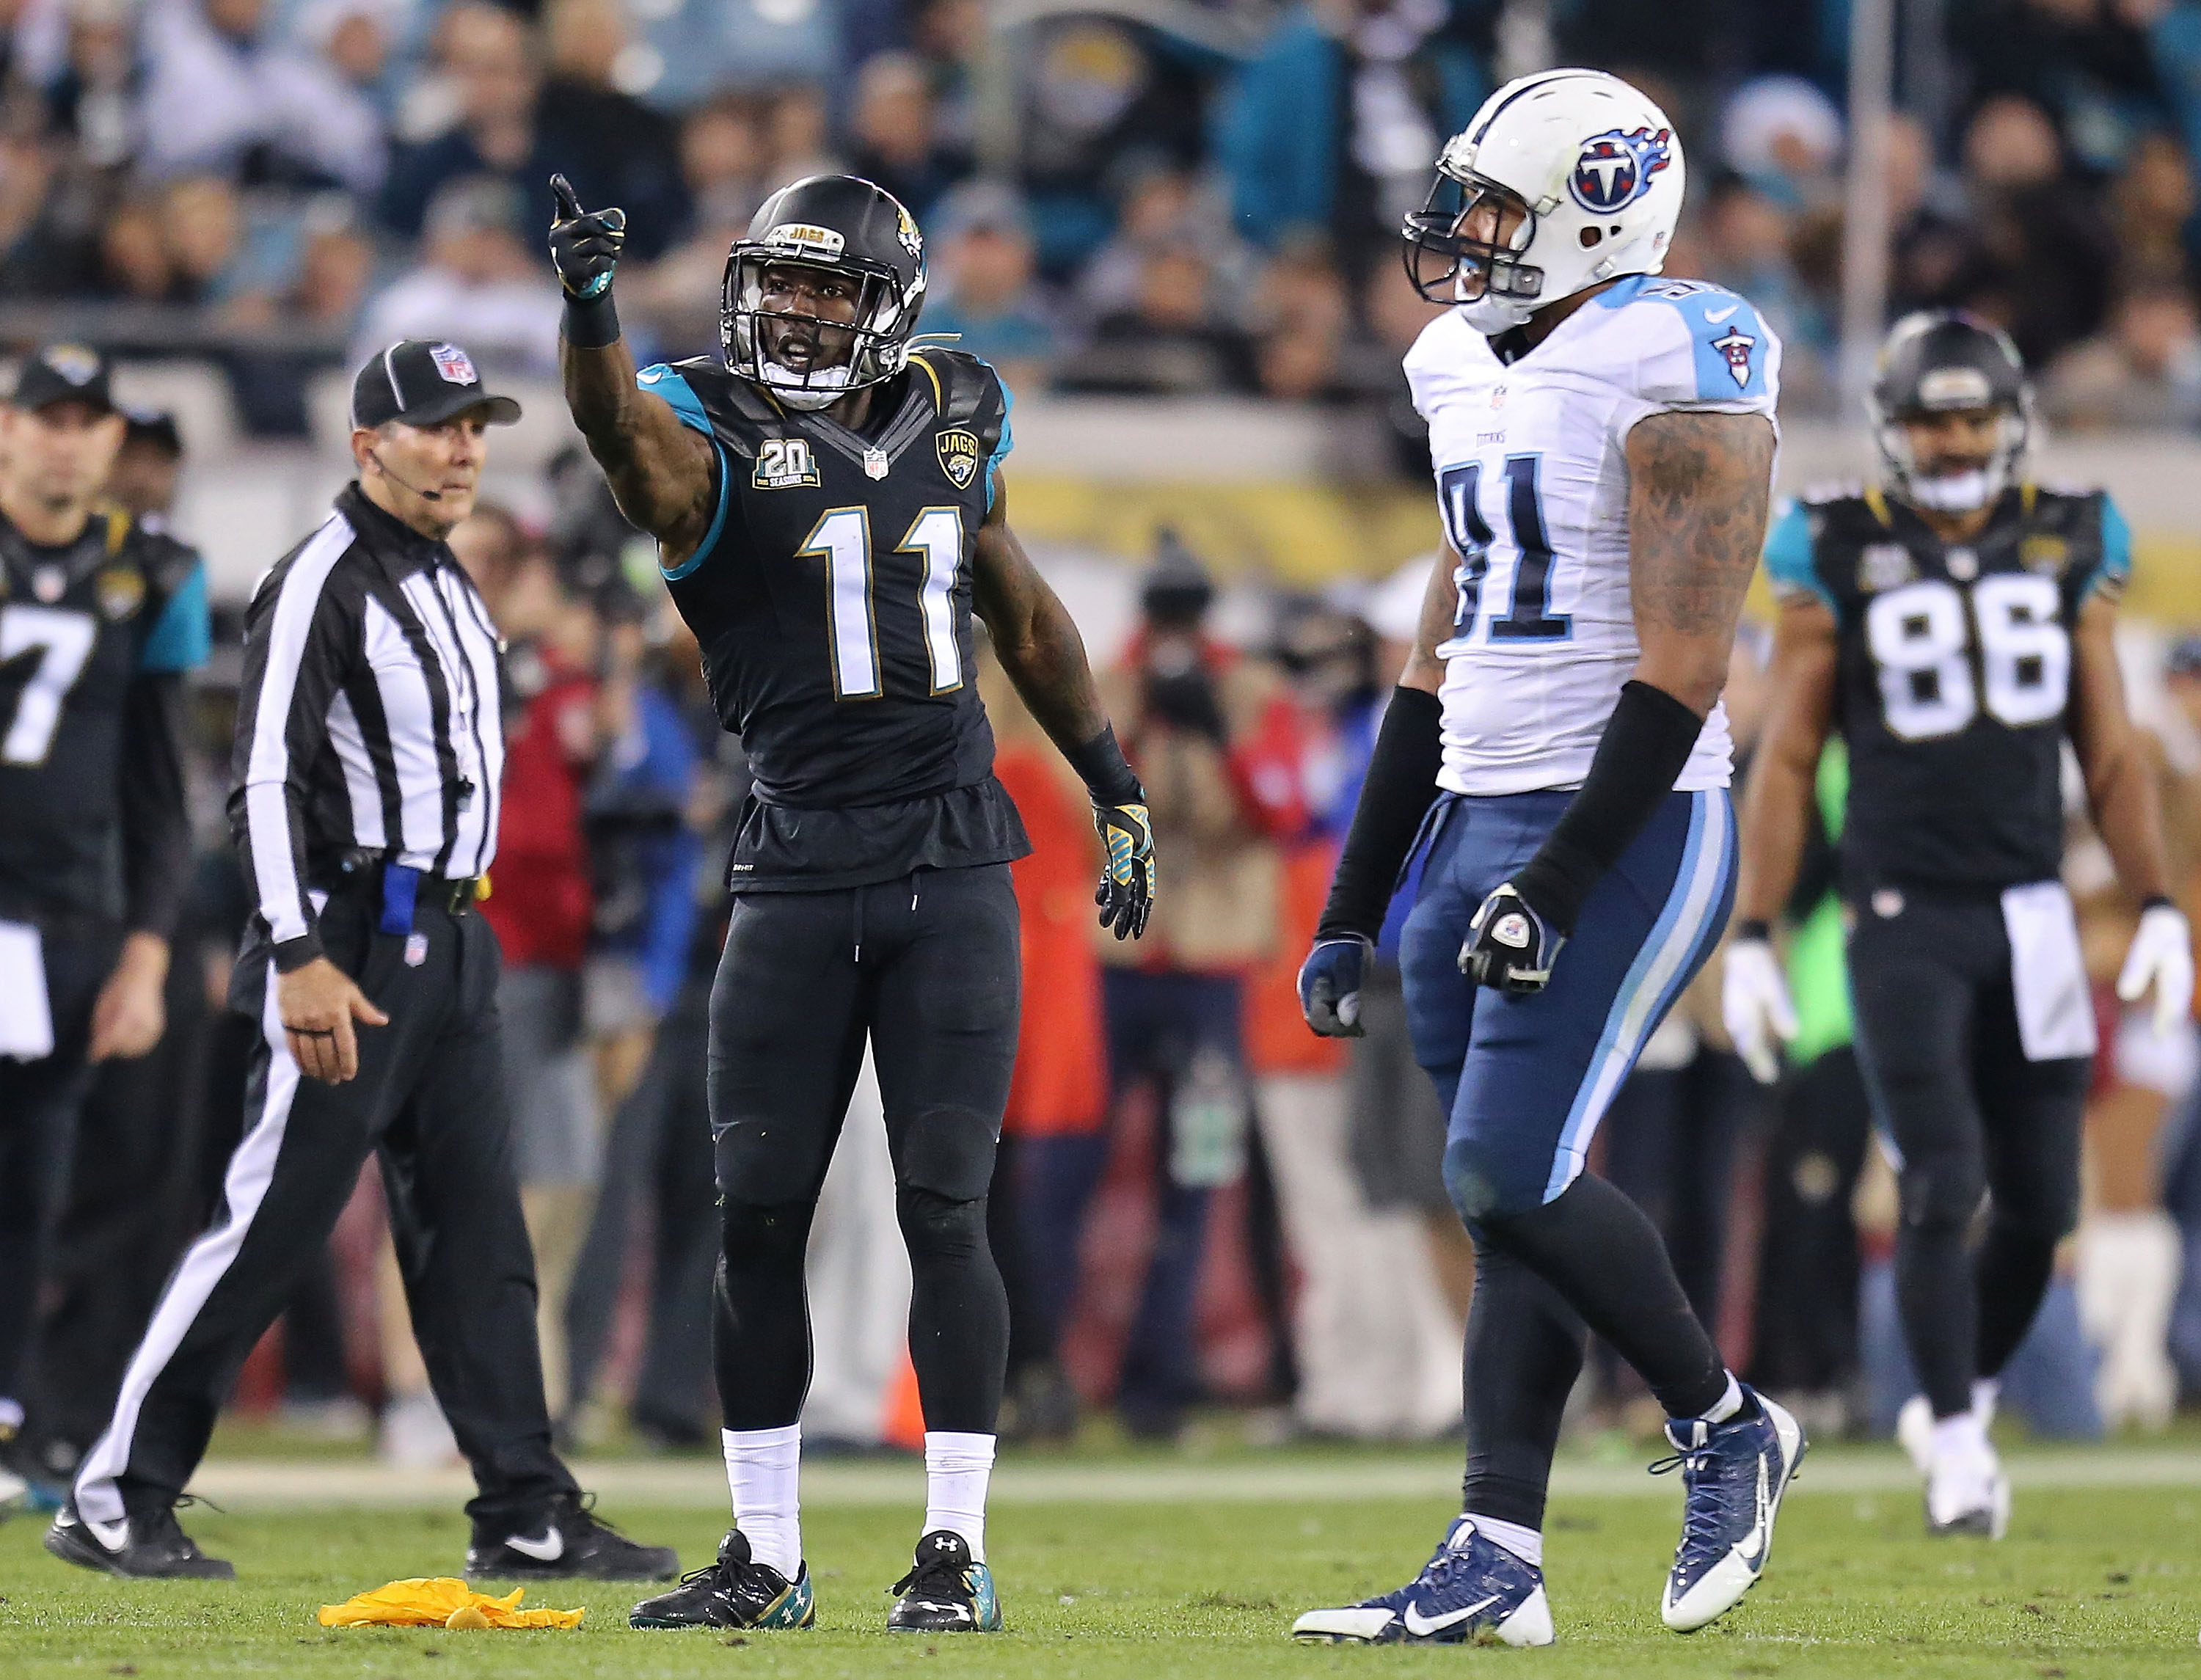 Fantasy football waiver wire, Week 17: Marqise Lee worth a flier?